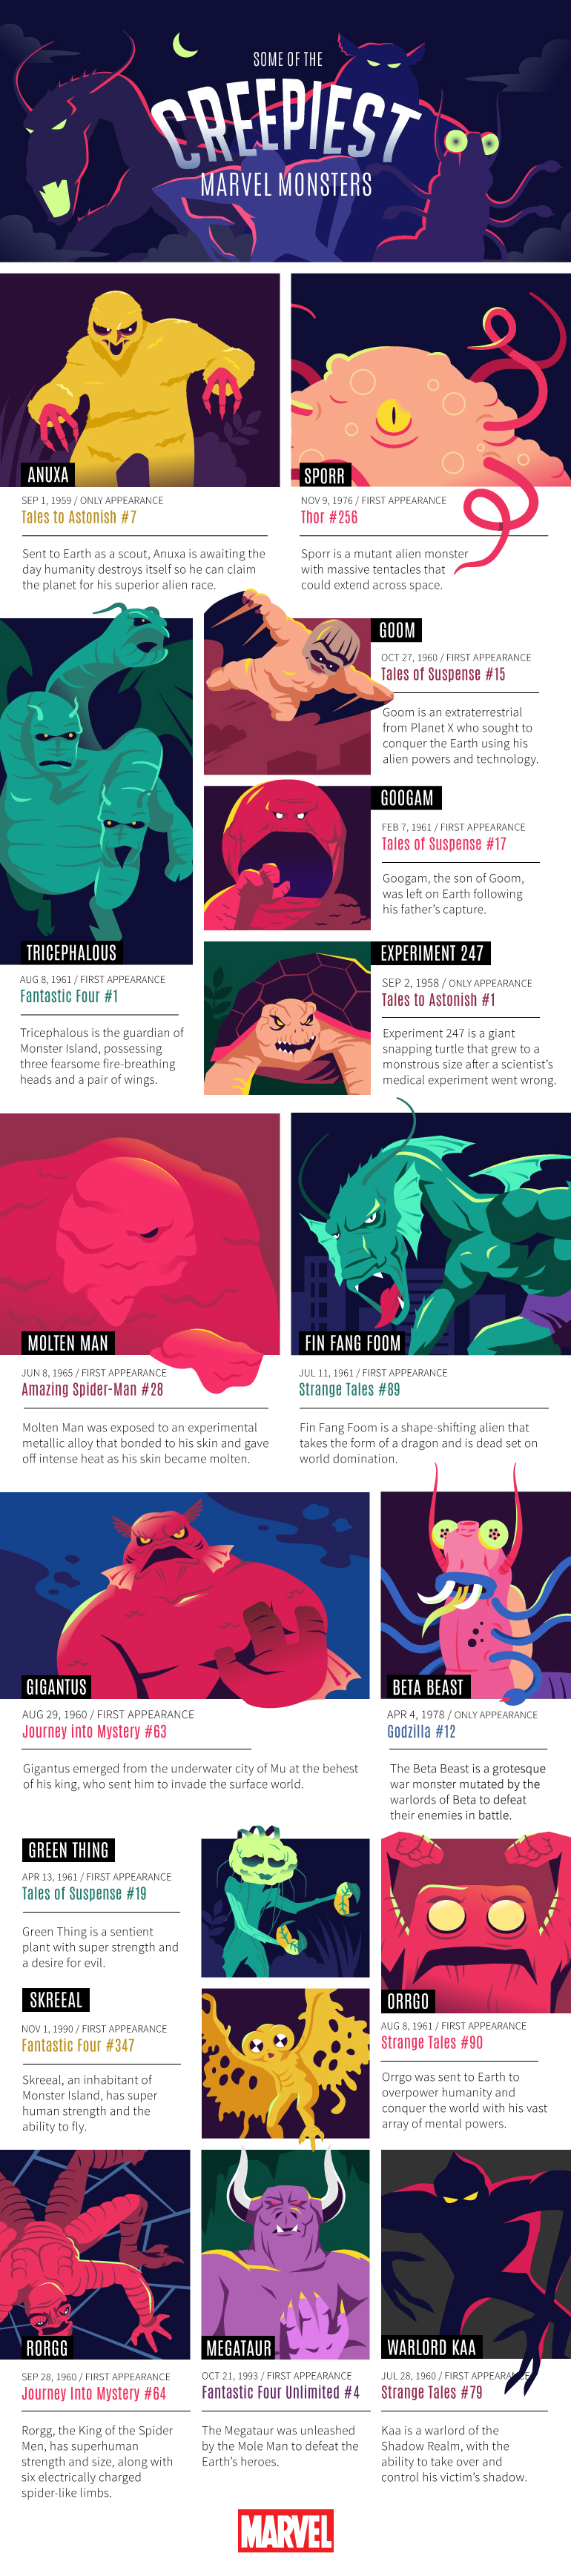 The Creepiest Marvel Monsters